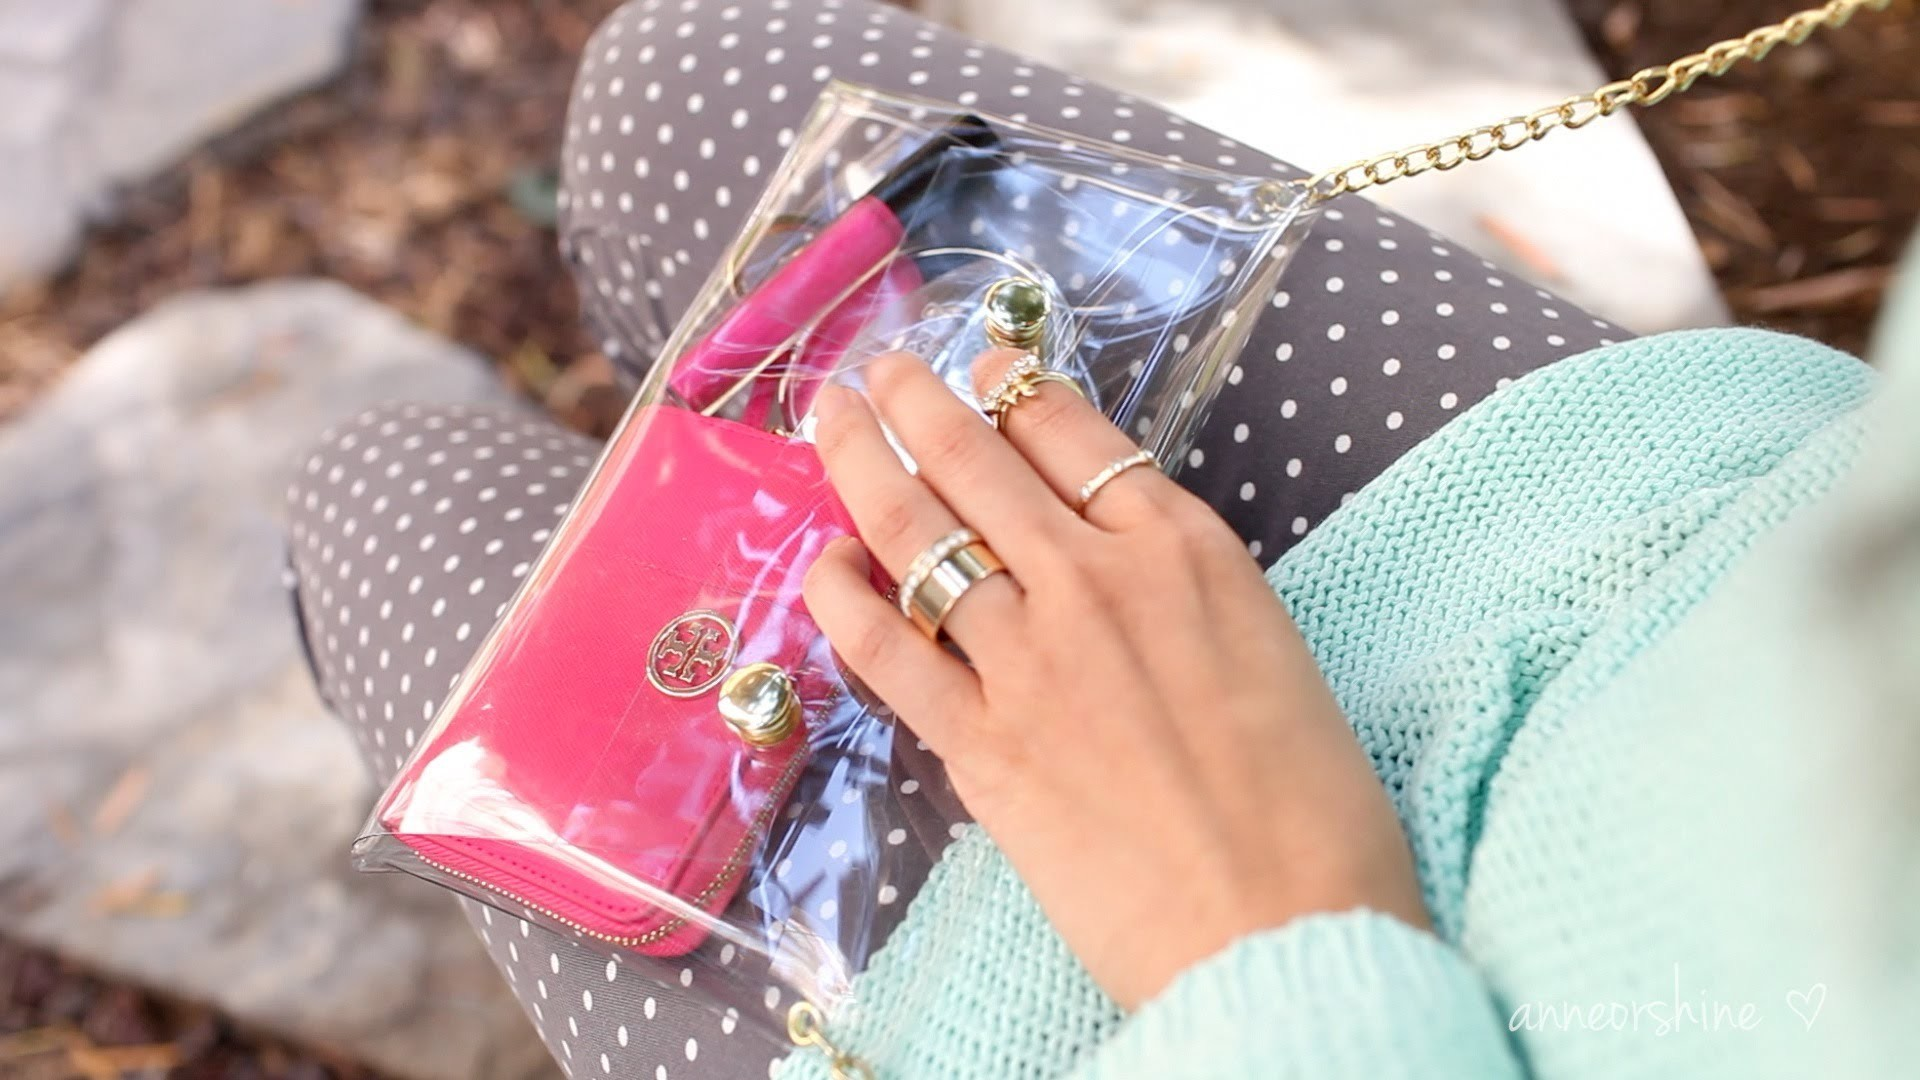 DIY Accessories: How to Make a Cute Clear Crossbody Clutch | ANNEORSHINE